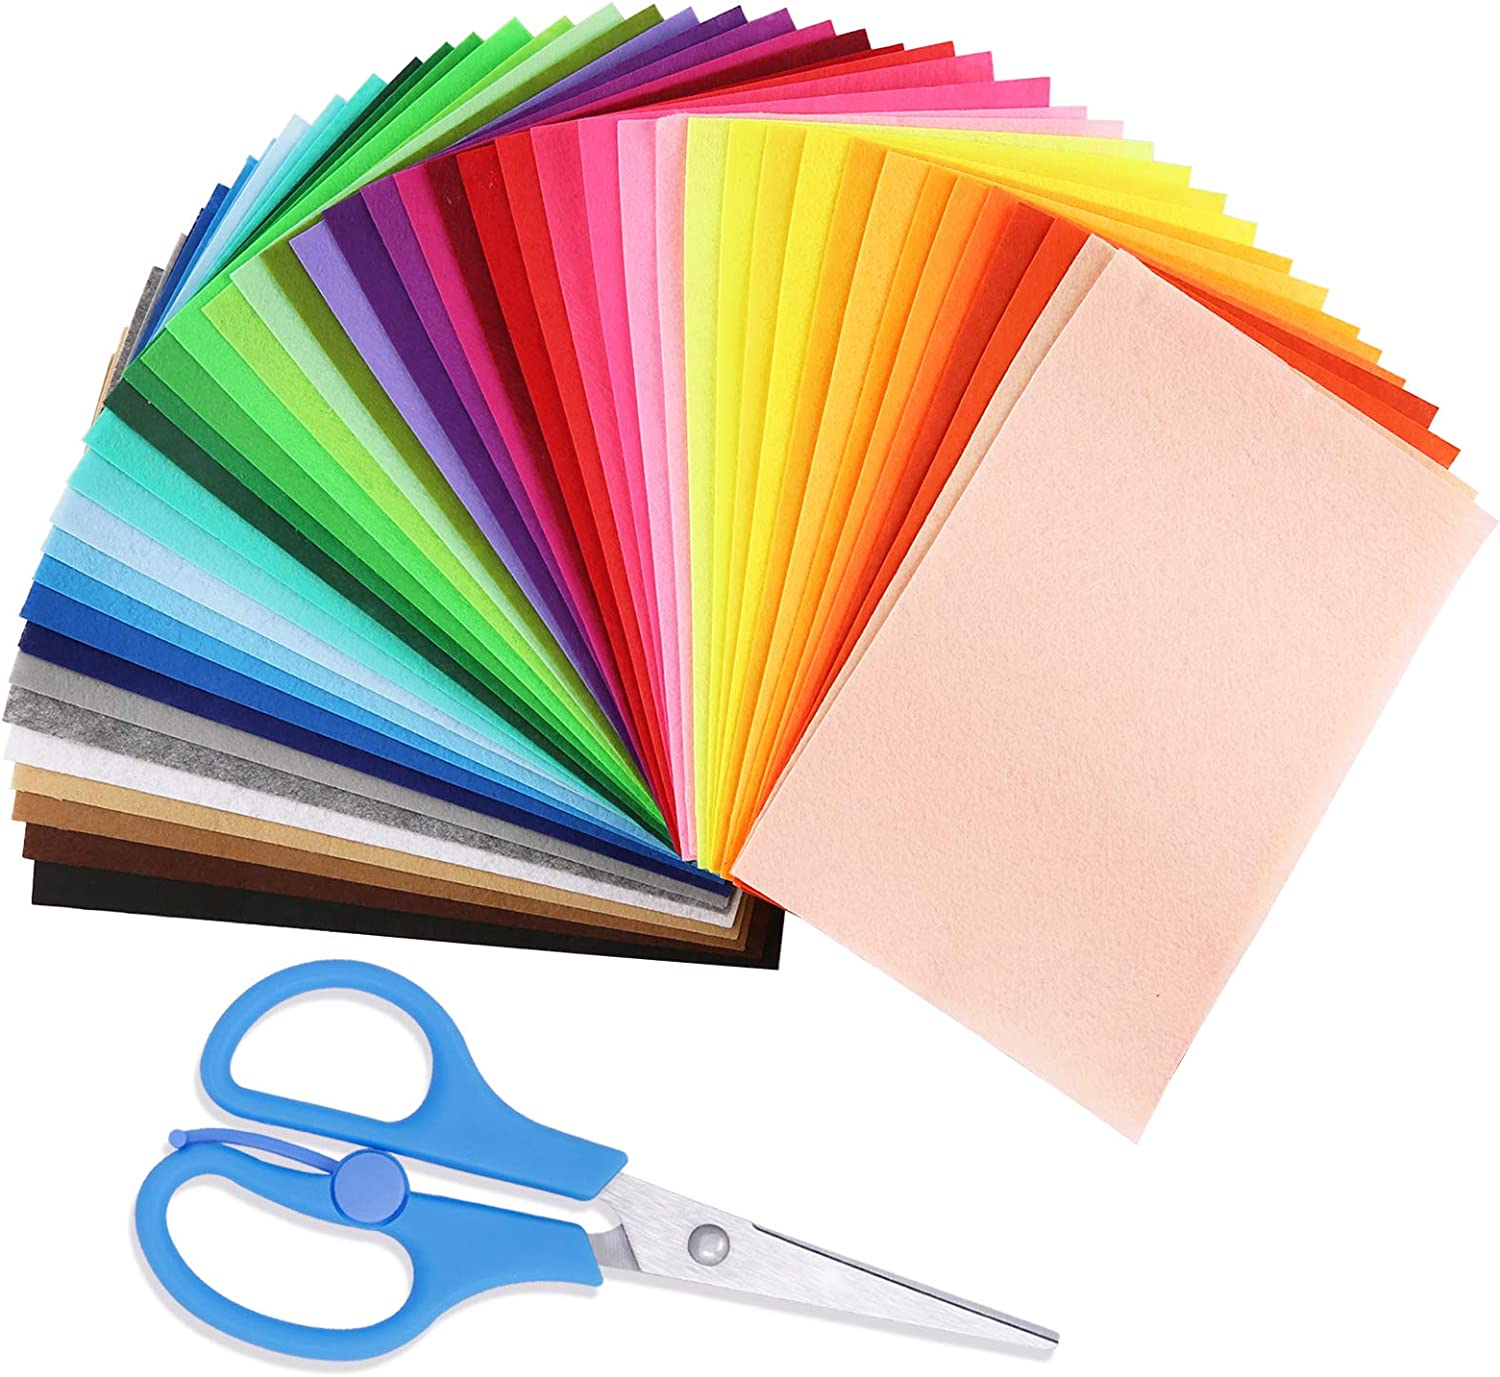 45Pcs Felt Fabric Sheet Assorted Color Felt Fabric Sheets (7.8in x 11.8in) Assorted Colors Felt Pack with Scissors for DIY Crafts, Sewing, School Projects, Decoration, Crafting Projects